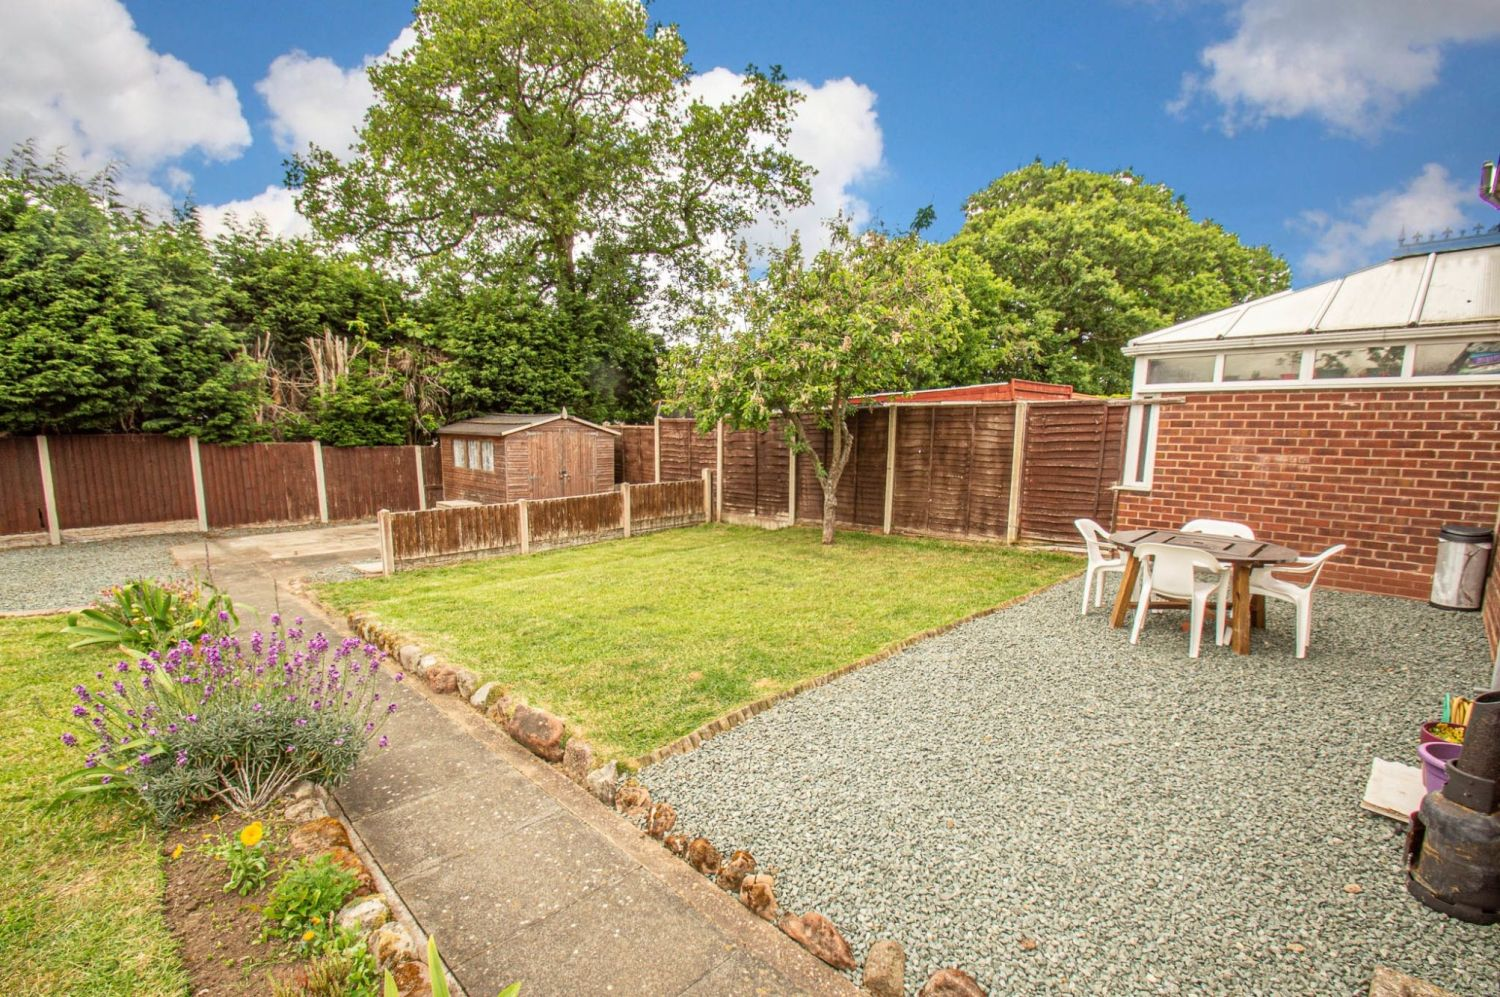 3 bed semi-detached for sale in Gauden Road, Wollescote  - Property Image 12